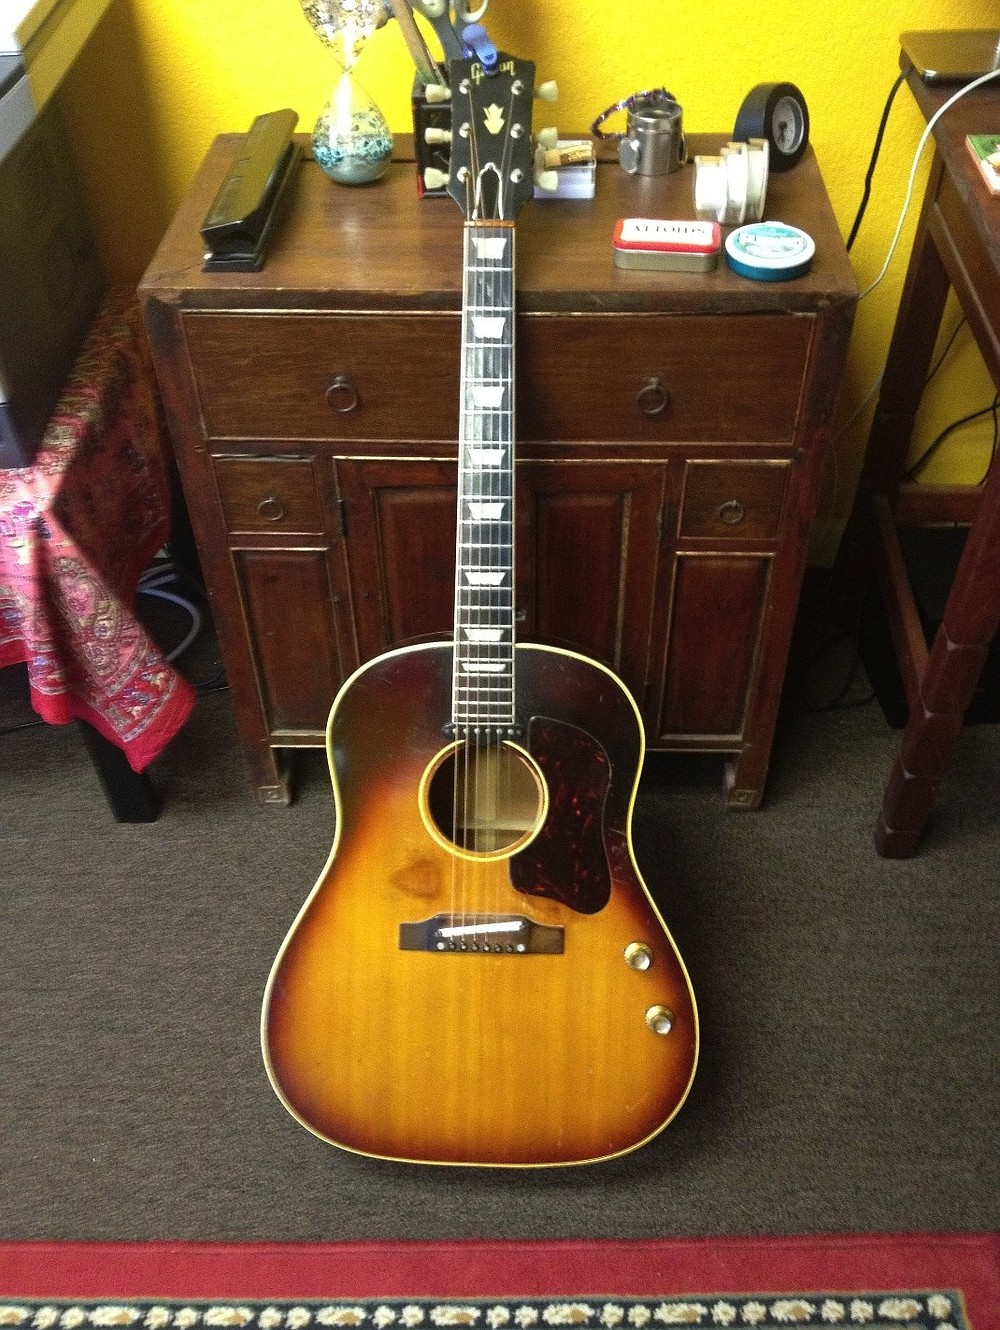 John McCaw, who bought the guitar from a friend in 1969 for $175, never knew what he had.